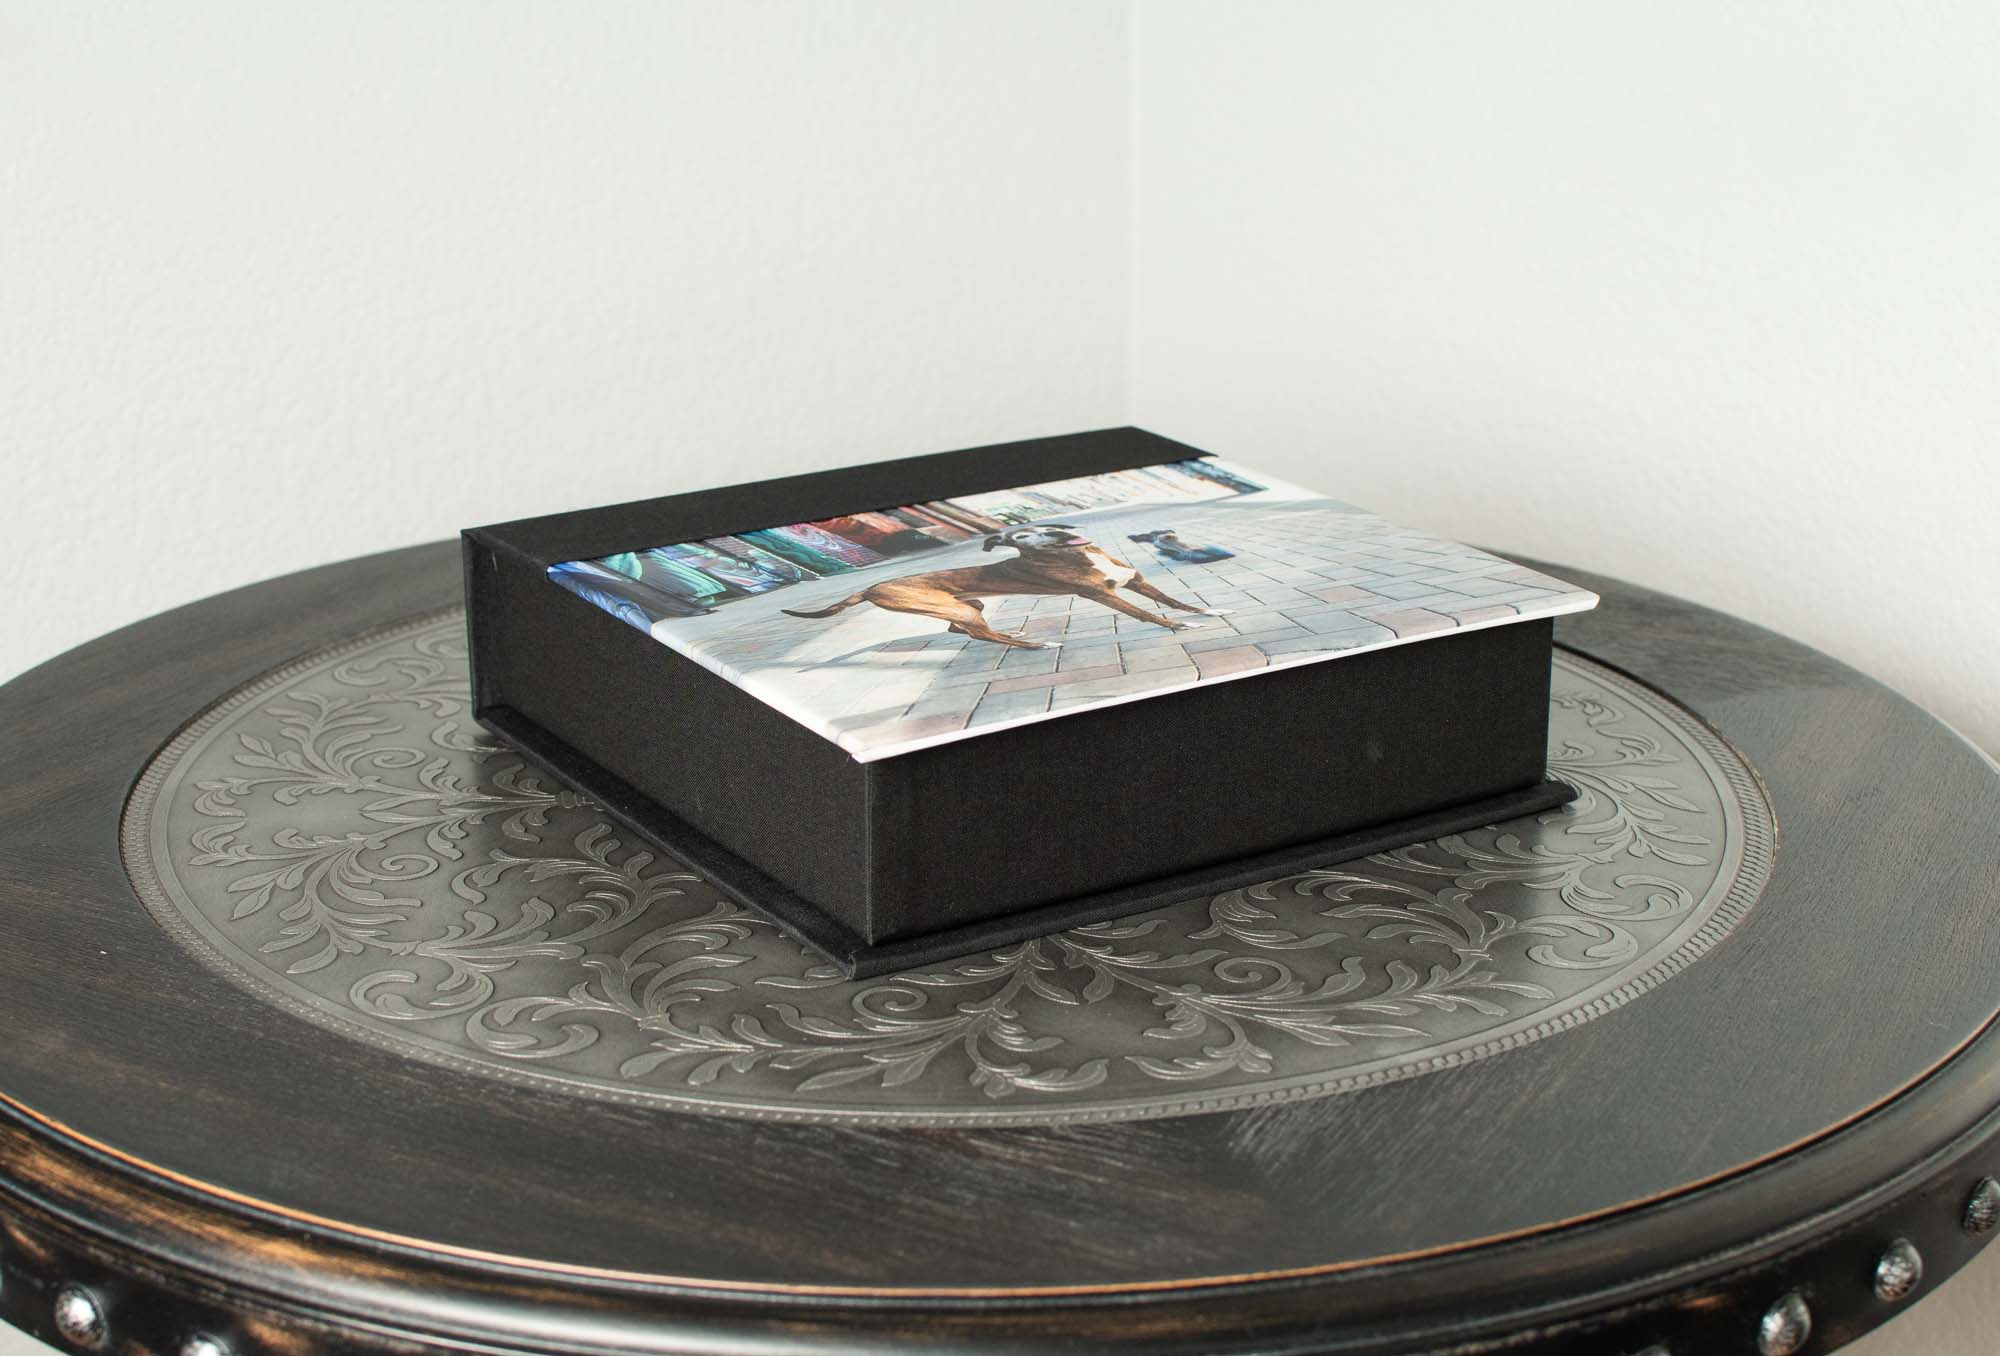 Custom Photo Boxes - Keep your cherished memories safe in a custom photo box. Choose your favorite 5 or 10 images to store in a keepsake box that is elegant enough to be displayed anywhere in your home. Images are mounted on a durable styrene material to ensure that they can be enjoyed for years to come. Available in a wide range of colors.